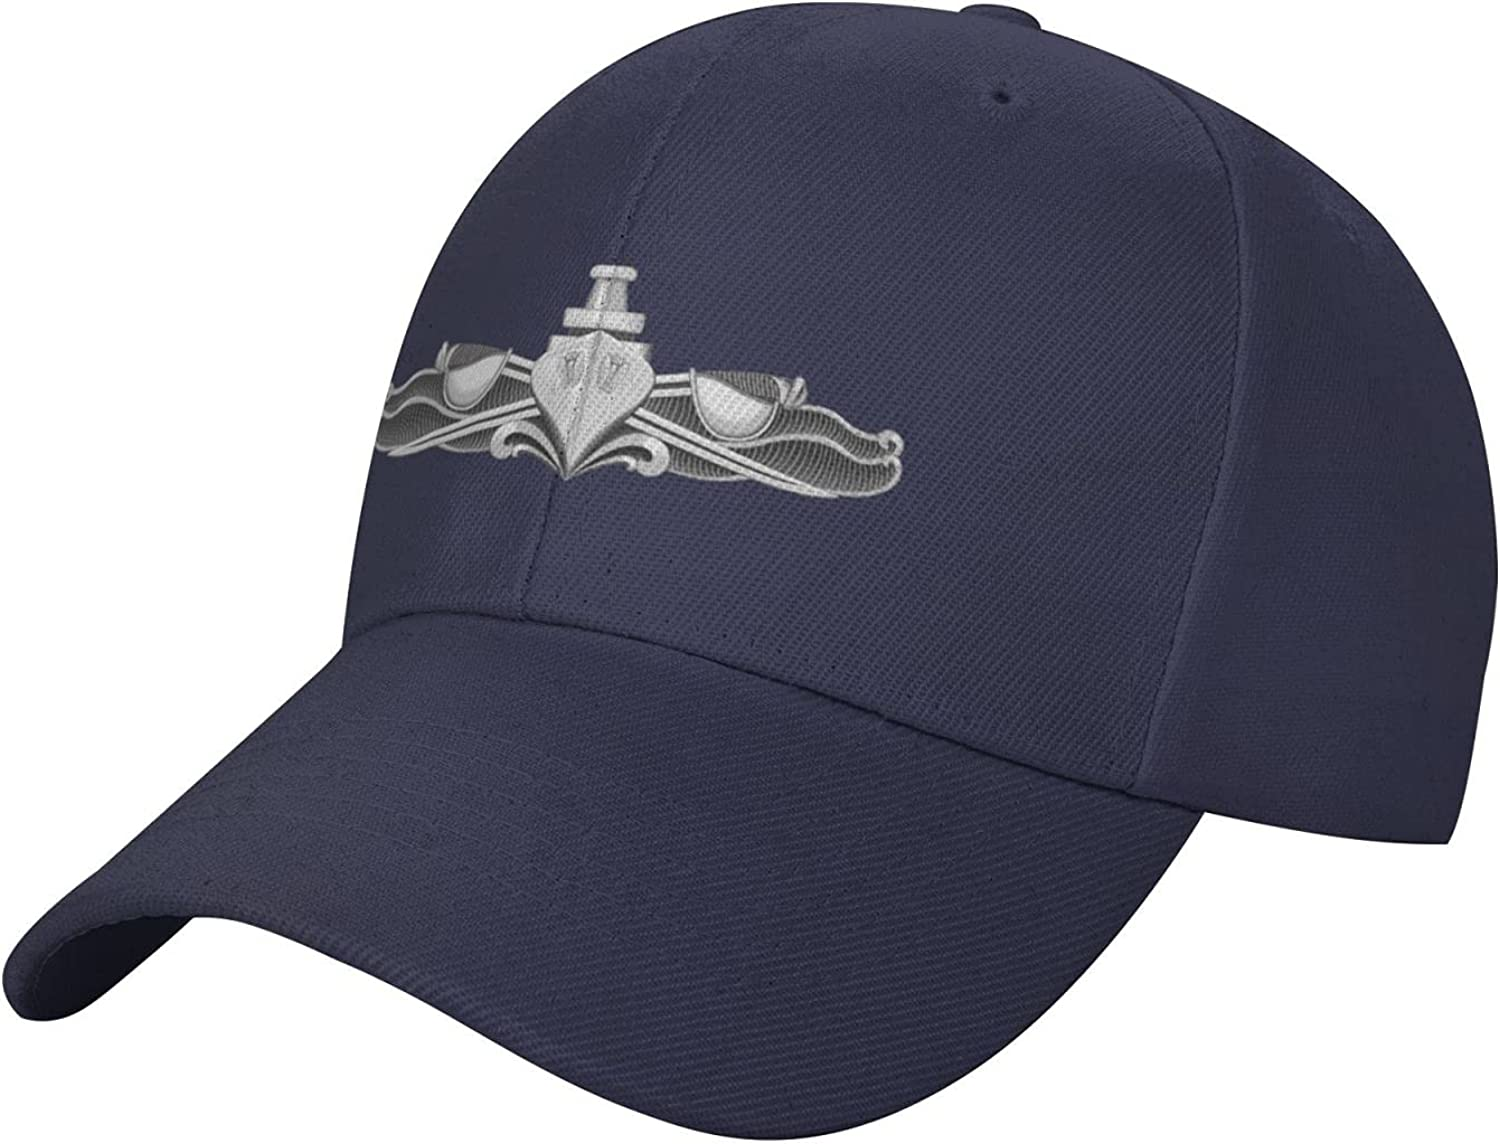 Us Navy Surface Warfare Enlisted Casquette with Theme to Honor Soldiers and Veterans